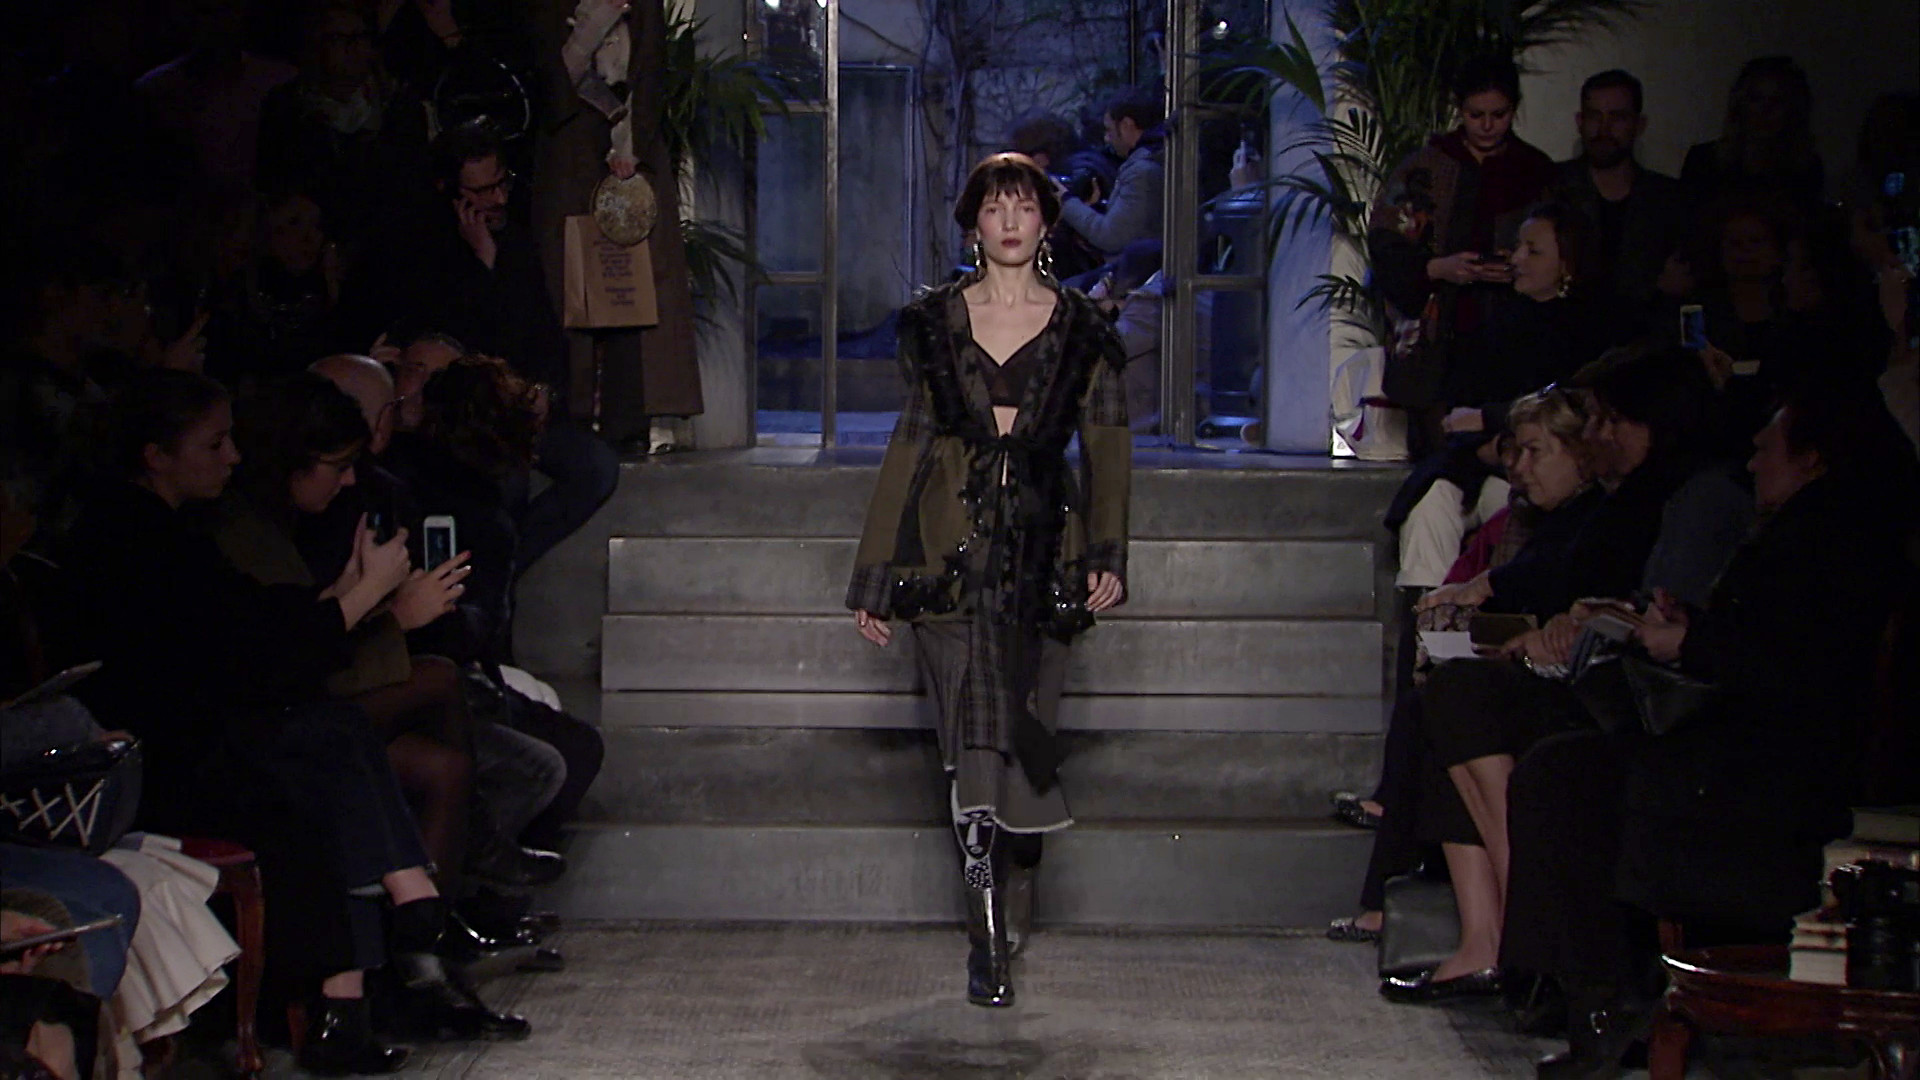 Antonio Marras Fall Winter Collection 2019 - Milan Fashion Show